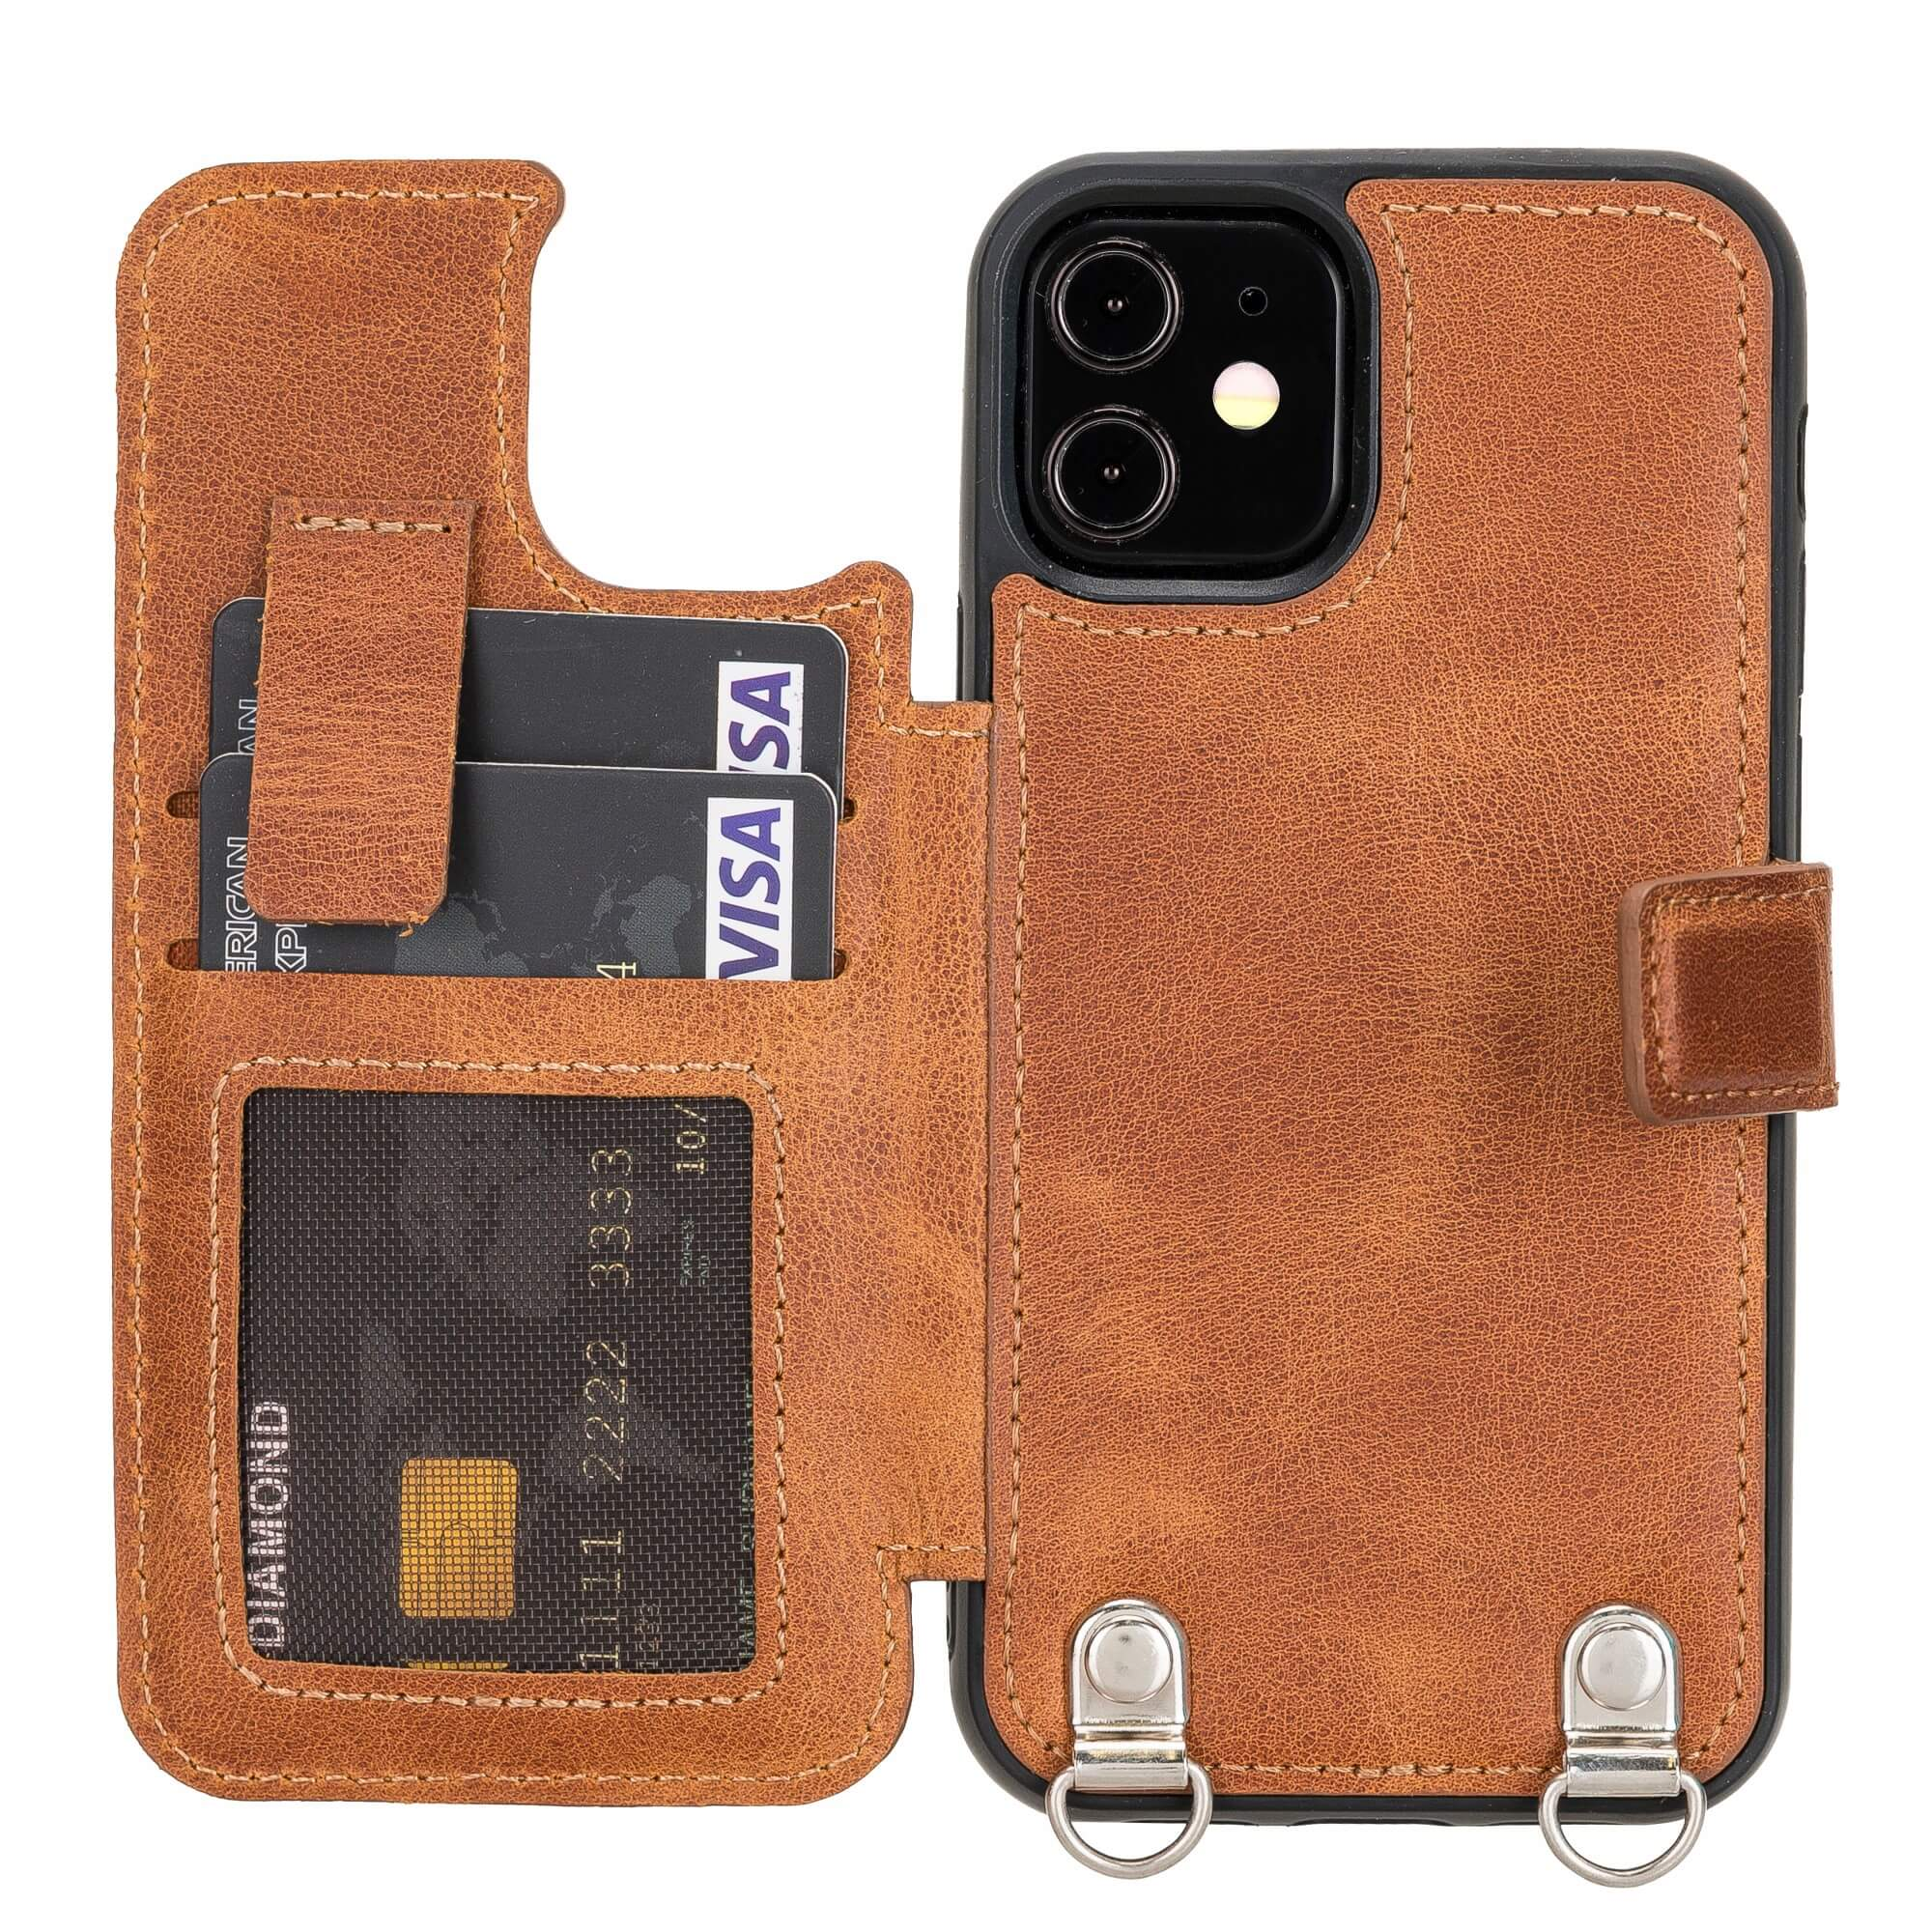 Fermo Leather Crossbody Wallet Phone Case for iPhone 12 Mini